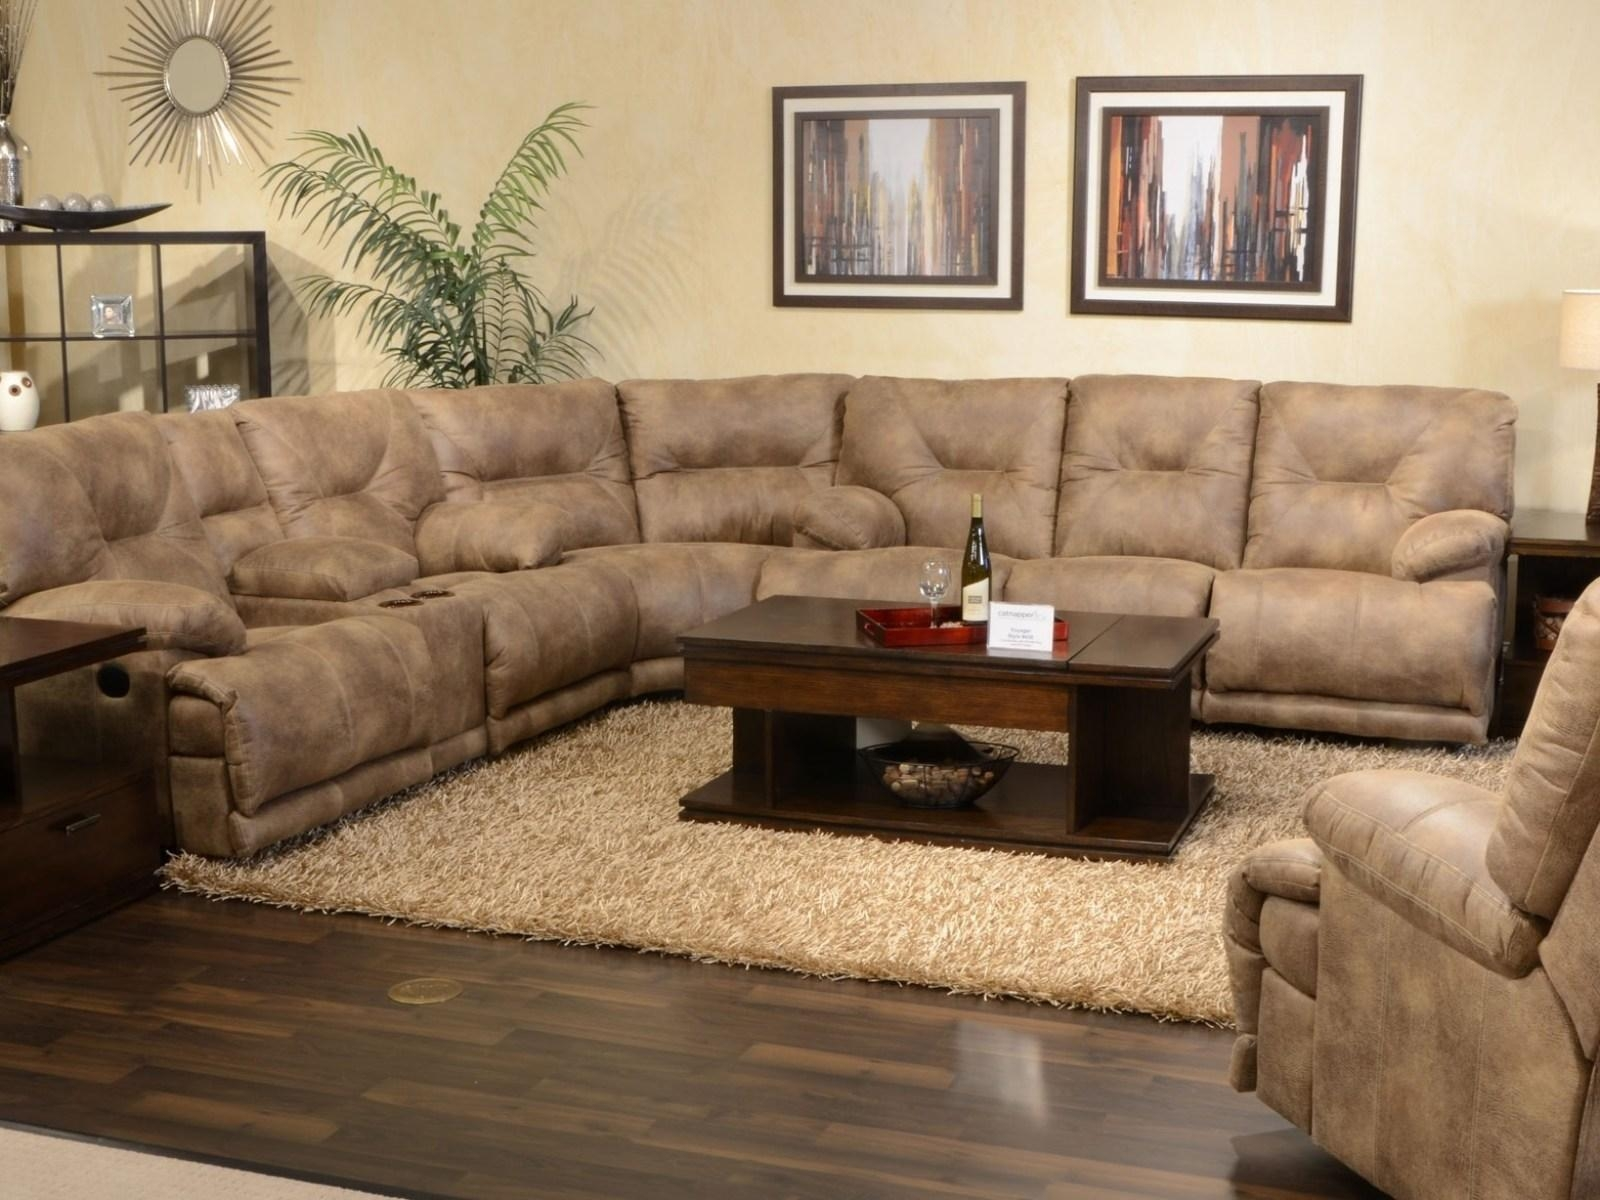 20 Top Western Style Sectional Sofas Sofa Ideas